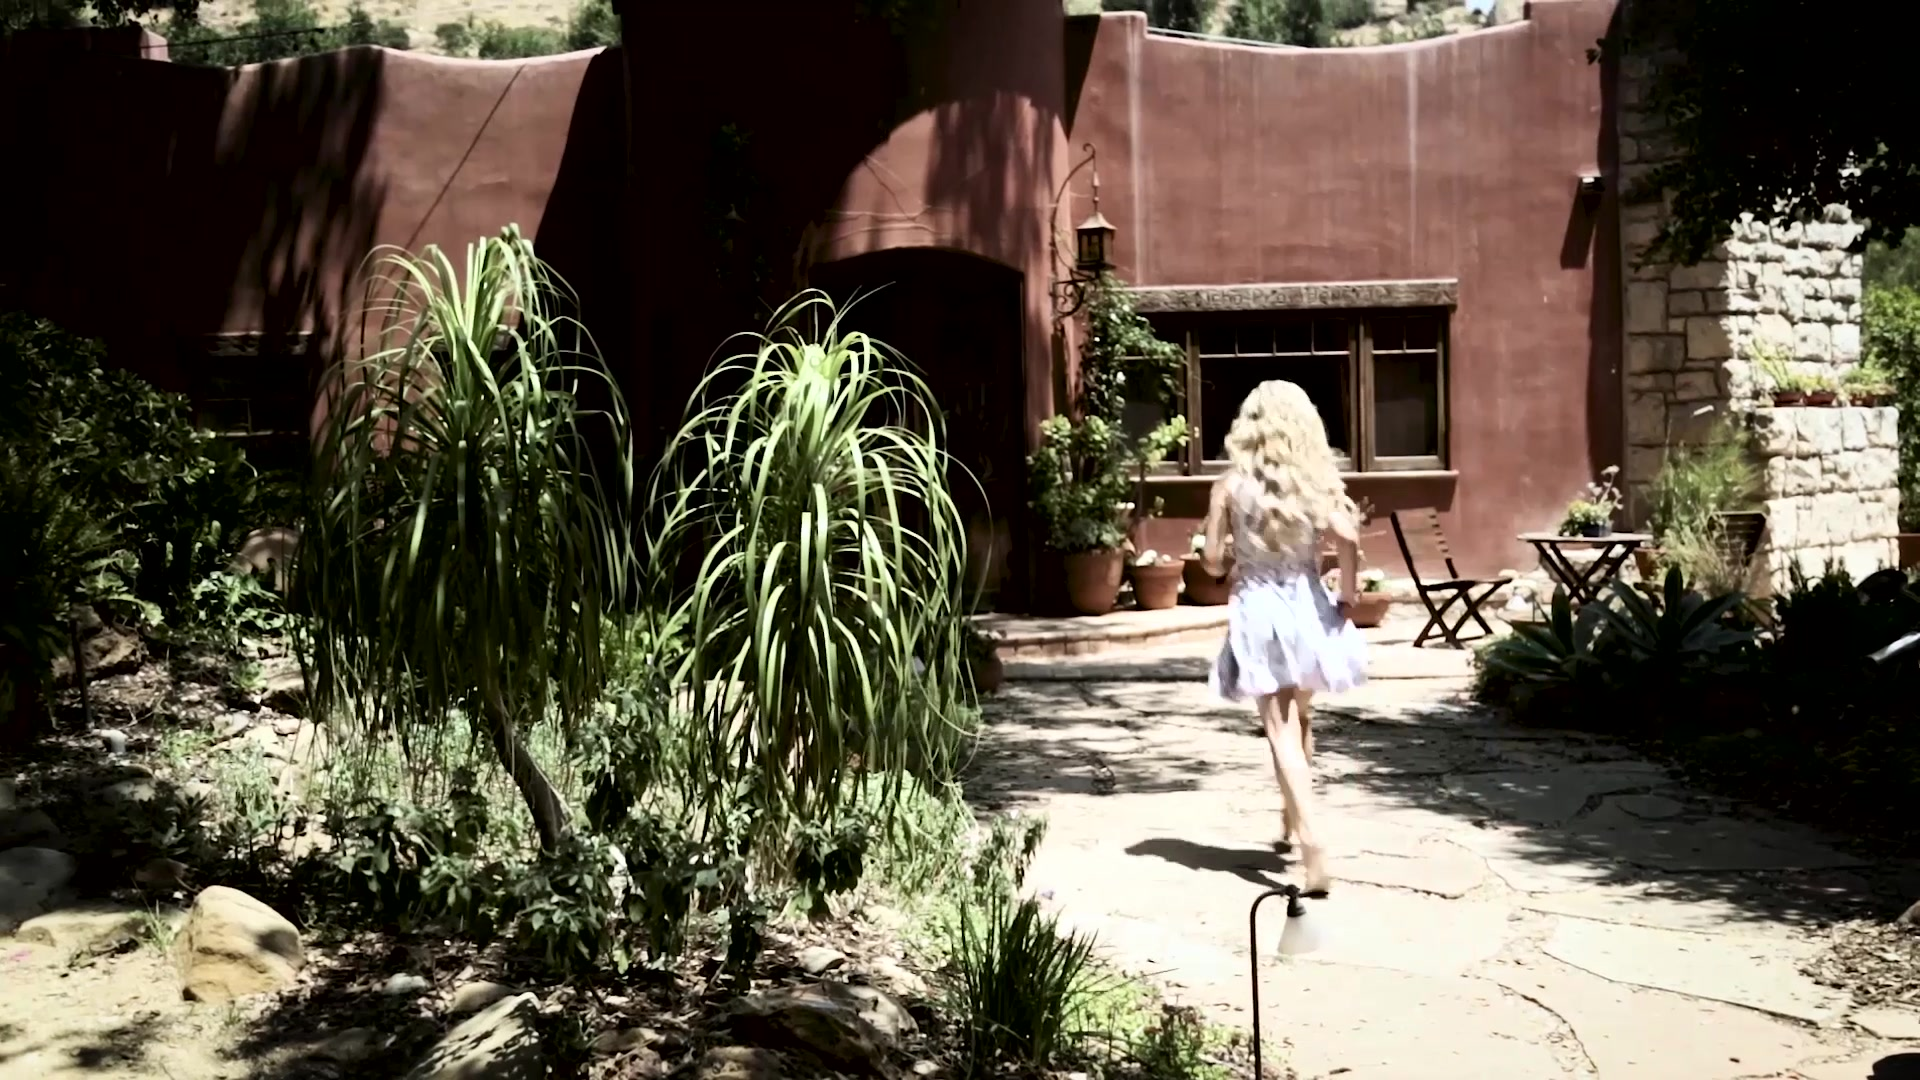 Scene with Kristen Scott (II) and Jill Kassidy - image 1 out of 20